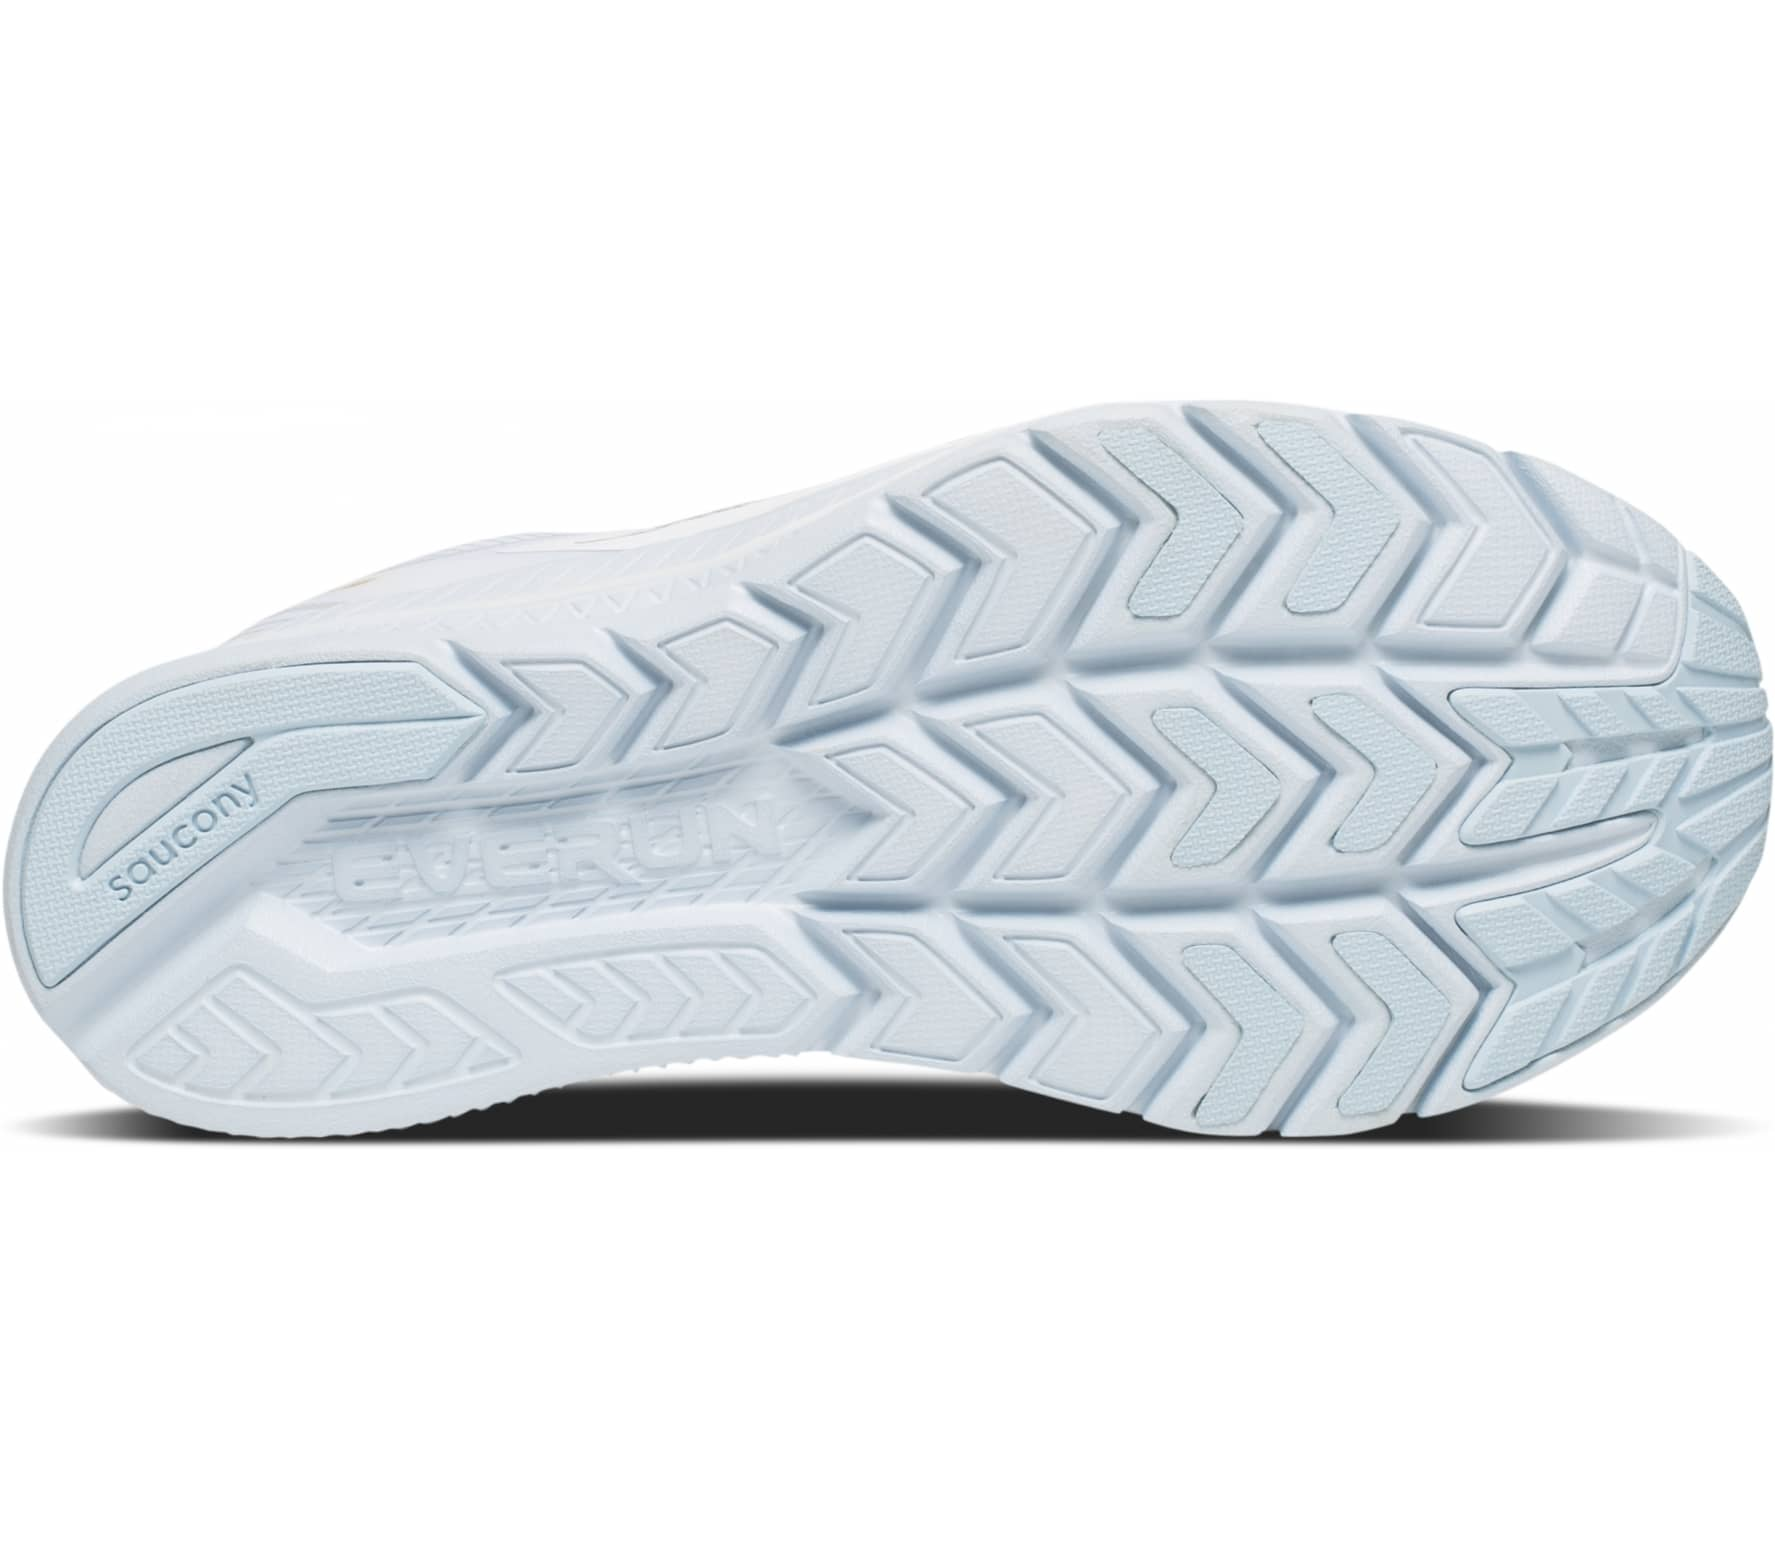 Barefoot Saucony Running Shoes